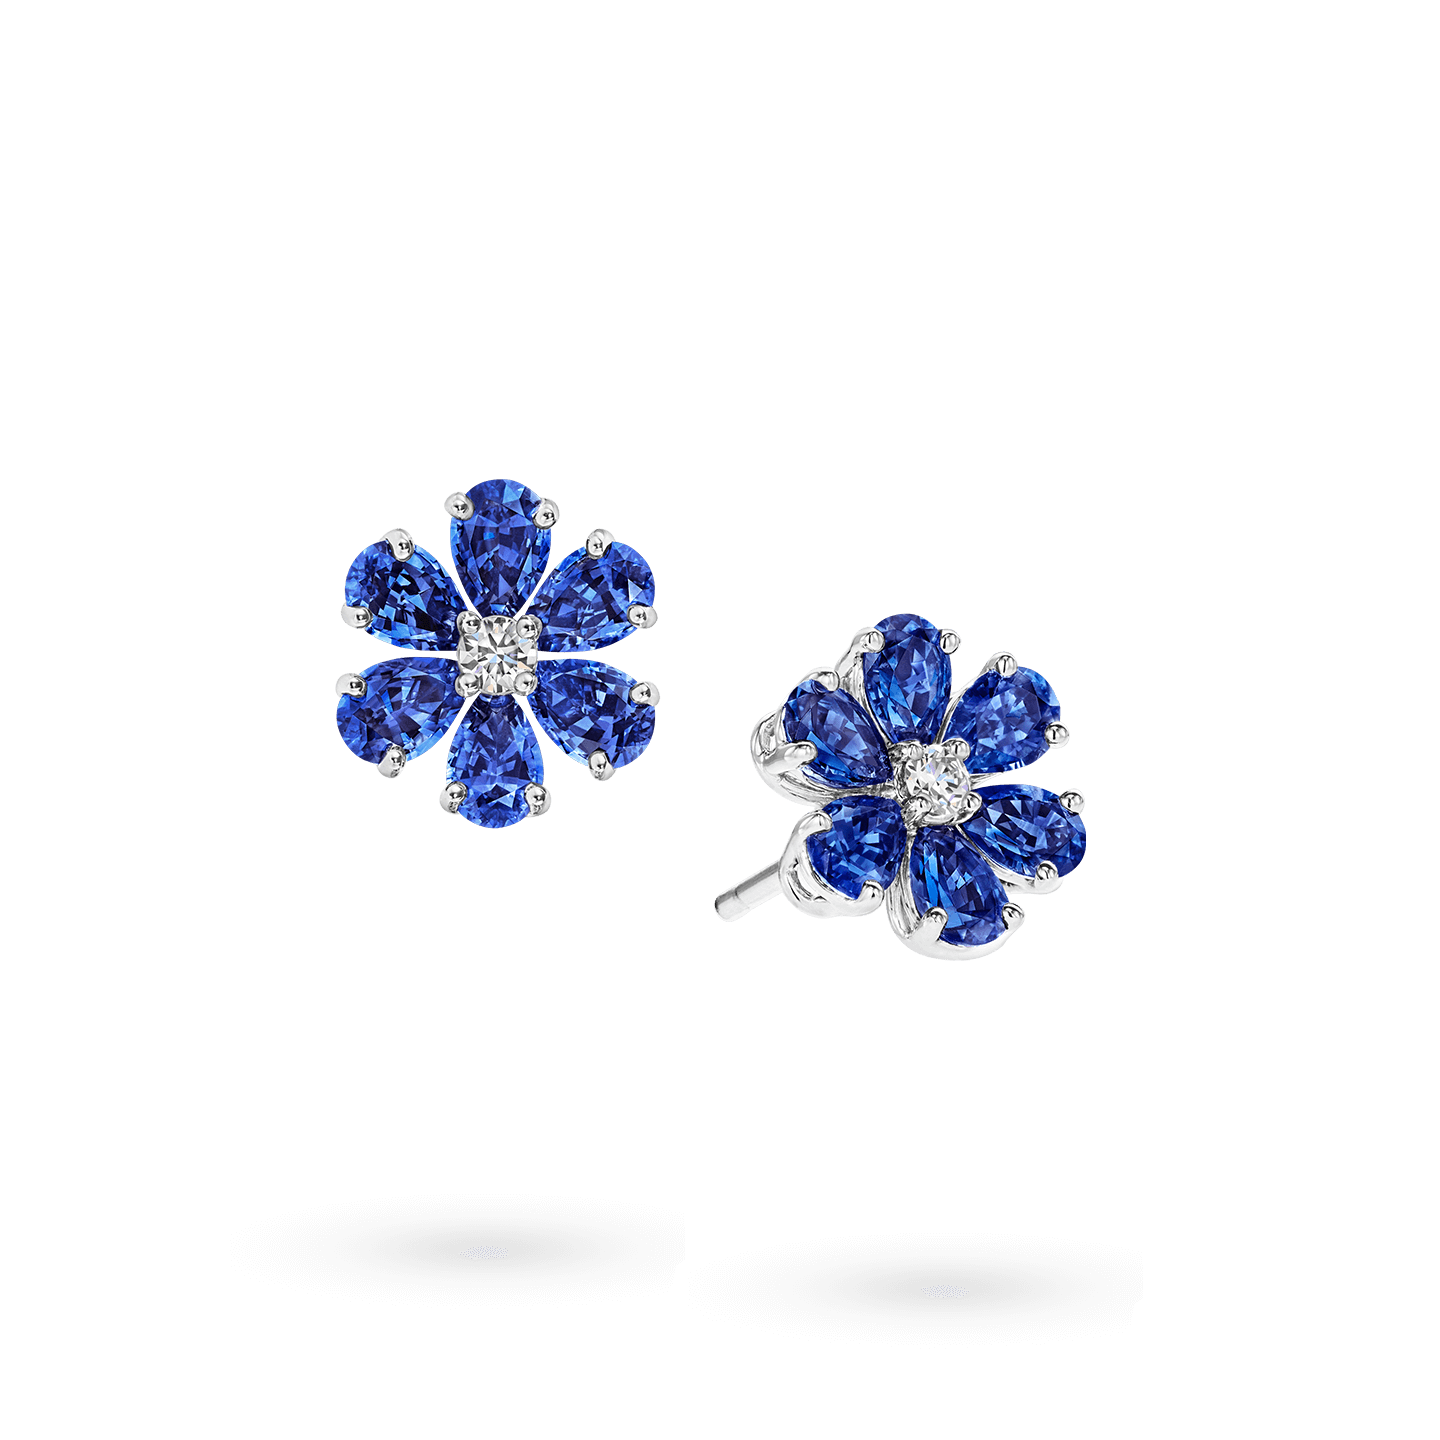 Forget-Me-Not Sapphire and Diamond Earrings, Product Image 2